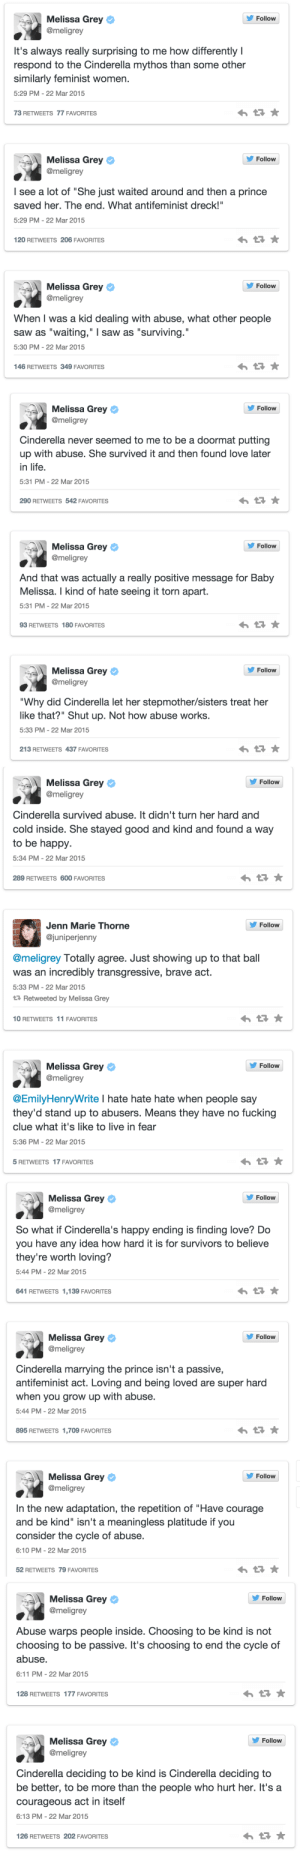 "fluffycakesistainted:  imagineagreatadventure:  I just thought this set of tweets was really important.  ​This set of tweets is ALWAYS important. : s, Melissa Grey  Follow  @meligrey  It's always really surprising to me how differently I  respond to the Cinderella mythos than some other  similarly feminist women.  5:29 PM-22 Mar 2015  73 RETWEETS 77 FAVORITES  Follow  Melissa Grey  @meligrey  I see a lot of ""She just waited around and then a prince  saved her. The end. What antifeminist dreck!""  5:29 PM-22 Mar 2015  120 RETWEETS 206 FAVORITES  s, Melissa Grey  Follow  @meligrey  When I was a kid dealing with abuse, what other people  saw as ""waiting,"" I saw as ""surviving.""  5:30 PM- 22 Mar 2015  146 RETWEETS 349 FAVORITES   Melissa Grey ф  @meligrey  ' Follow  Cinderella never seemed to me to be a doormat putting  up with abuse. She survived it and then found love later  in life  5:31 PM-22 Mar 2015  290 RETWEETS 542 FAVORITES  Follow  Melissa Grey ф  @meligrey  And that was actually a really positive message for Baby  Melissa. I kind of hate seeing it torn apart.  5:31 PM-22 Mar 2015  93 RETWEETS 180 FAVORITES  Follow  Melissa Grey ф  @meligrey  ""Why did Cinderella let her stepmother/sisters treat her  like that?"" Shut up. Not how abuse works.  5:33 PM-22 Mar 2015  213 RETWEETS 437 FAVORITES   s, Melissa Grey  @meligrey  Follow  Cinderella survived abuse. It didn't turn her hard and  cold inside. She stayed good and kind and found a way  to be happy  5:34 PM- 22 Mar 2015  289 RETWEETS 600 FAVORITES  Follovw  Jenn Marie Thorne  @juniperjenny  @meligrey Totally agree. Just showing up to that ball  was an incredibly transgressive, brave act.  5:33 PM- 22 Mar 2015  Retweeted by Melissa Grey  10 RETWEETS 11 FAVORITES  s, Melissa Grey  Follow  @meligrey  @EmilyHenryWrite I hate hate hate when people say  they'd stand up to abusers. Means they have no fucking  clue what it's like to live in fear  5:36 PM- 22 Mar 2015  5 RETWEETS 17 FAVORITES   Follow  Melissa Grey ф  @meligrey  So what if Cinderella's happy ending is finding love? Do  you have any idea how hard it is for survivors to believe  they're worth loving?  5:44 PM-22 Mar 2015  641 RETWEETS 1,139 FAVORITES  Follow  Melissa Grey  @meligrey  Cinderella marrying the prince isn't a passive,  antifeminist act. Loving and being loved are super hard  when you grow up with abuse.  5:44 PM-22 Mar 2015  895 RETWEETS 1,709 FAVORITES  Follovw  Melissa Grey ф  @meligrey  In the new adaptation, the repetition of ""Have courage  and be kind"" isn't a meaningless platitude if you  consider the cycle of abuse.  6:10 PM -22 Mar 2015  52 RETWEETS 79 FAVORITES   Melissa Grey  @meligrey  Follow  Abuse warps people inside. Choosing to be kind is not  choosing to be passive. It's choosing to end the cycle of  abuse.  6:11 PM-22 Mar 2015  128 RETWEETS 177 FAVORITES  Melissa Grey  @meligrey  Follow  Cinderella deciding to be kind is Cinderella deciding to  be better, to be more than the people who hurt her. It's a  courageous act in itself  6:13 PM-22 Mar 2015  126 RETWEETS 202 FAVORITES fluffycakesistainted:  imagineagreatadventure:  I just thought this set of tweets was really important.  ​This set of tweets is ALWAYS important."